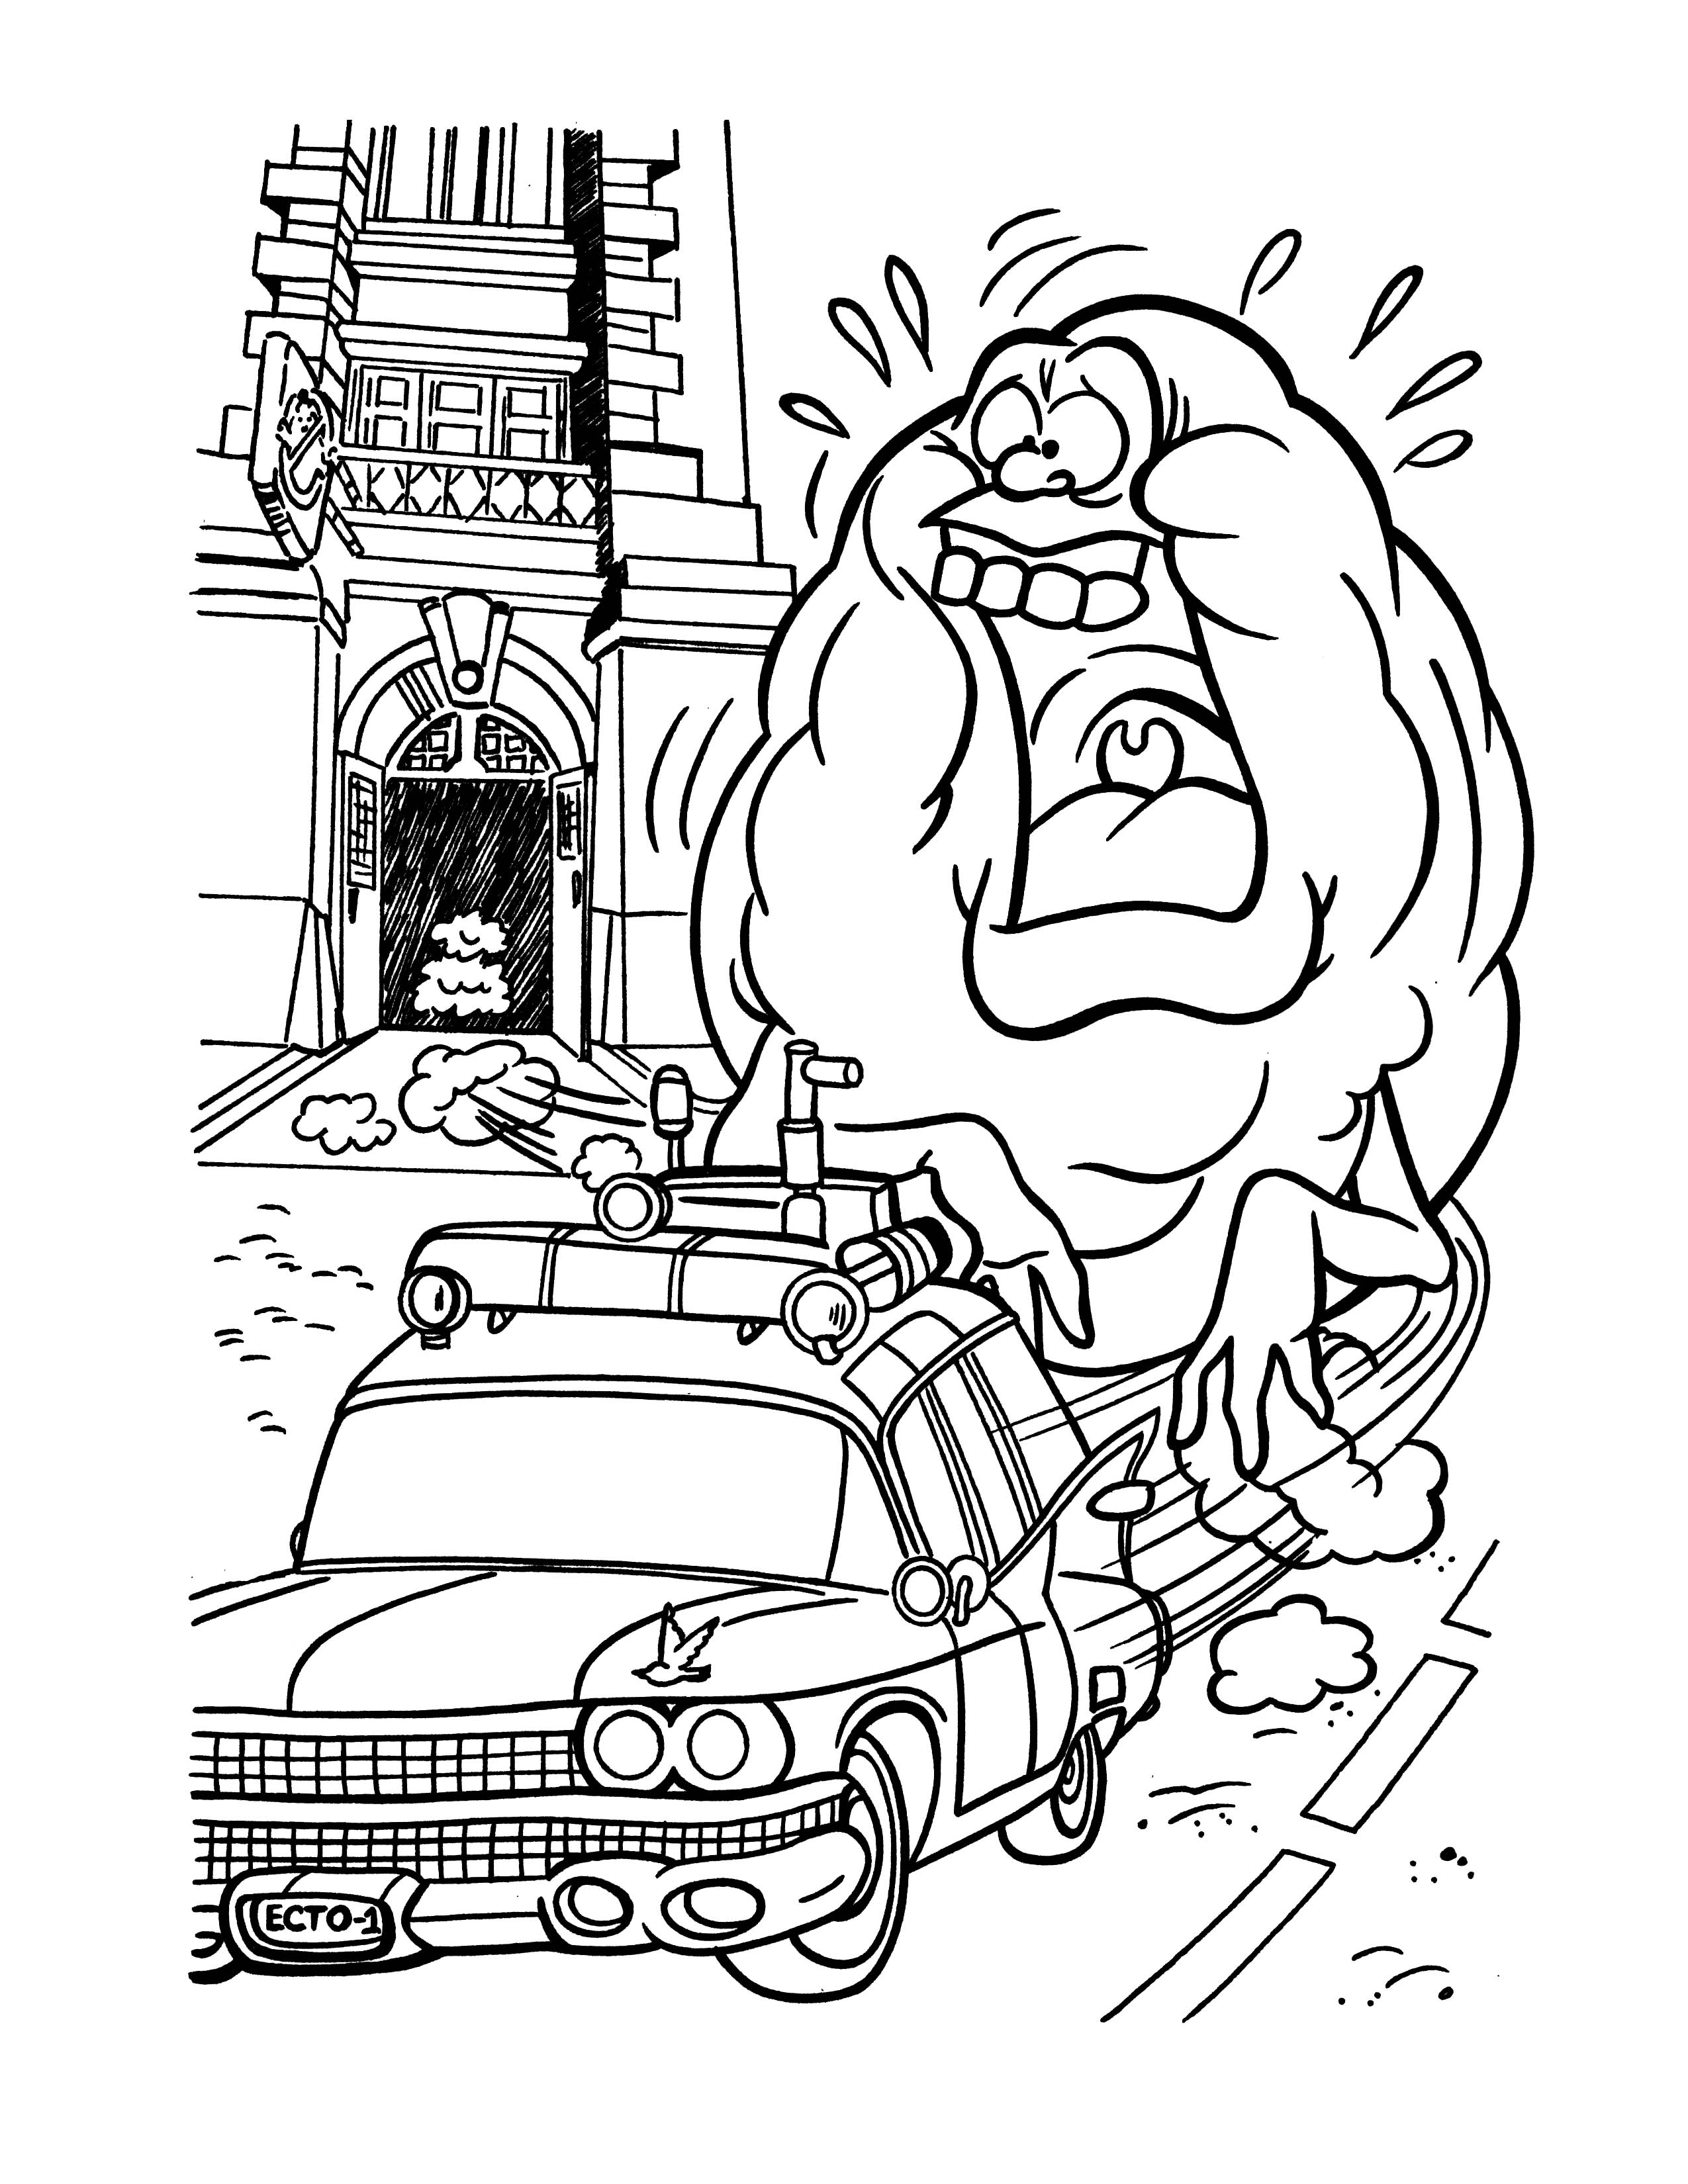 15 Printable Ghostbusters Coloring Pages